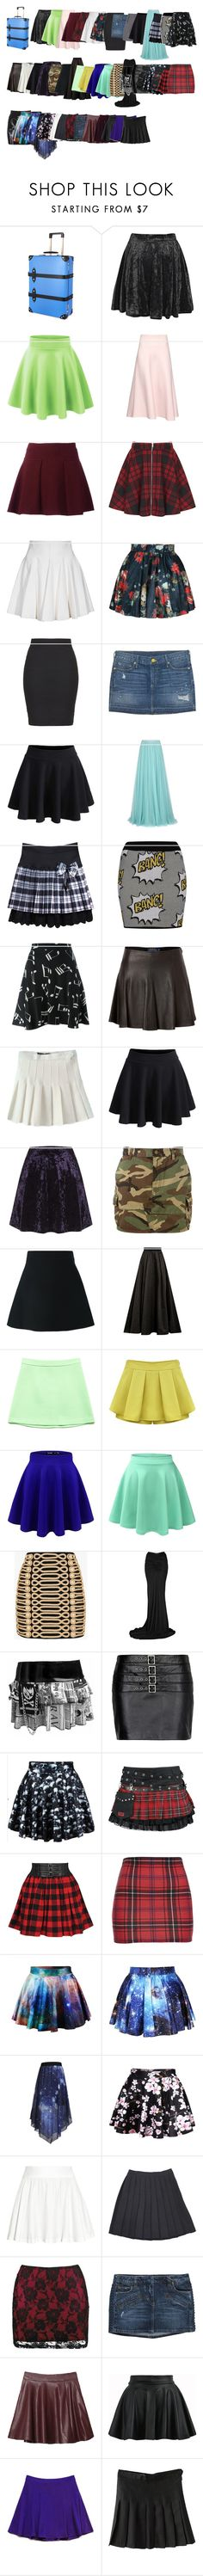 """Running away from home suitcase #7- skirts"" by oh0601 ❤ liked on Polyvore featuring Globe-Trotter, Boohoo, Valentino, Oh My Love, Plein Sud, Annie Greenabelle, True Religion, Jenny Packham, Topshop and Yves Saint Laurent"